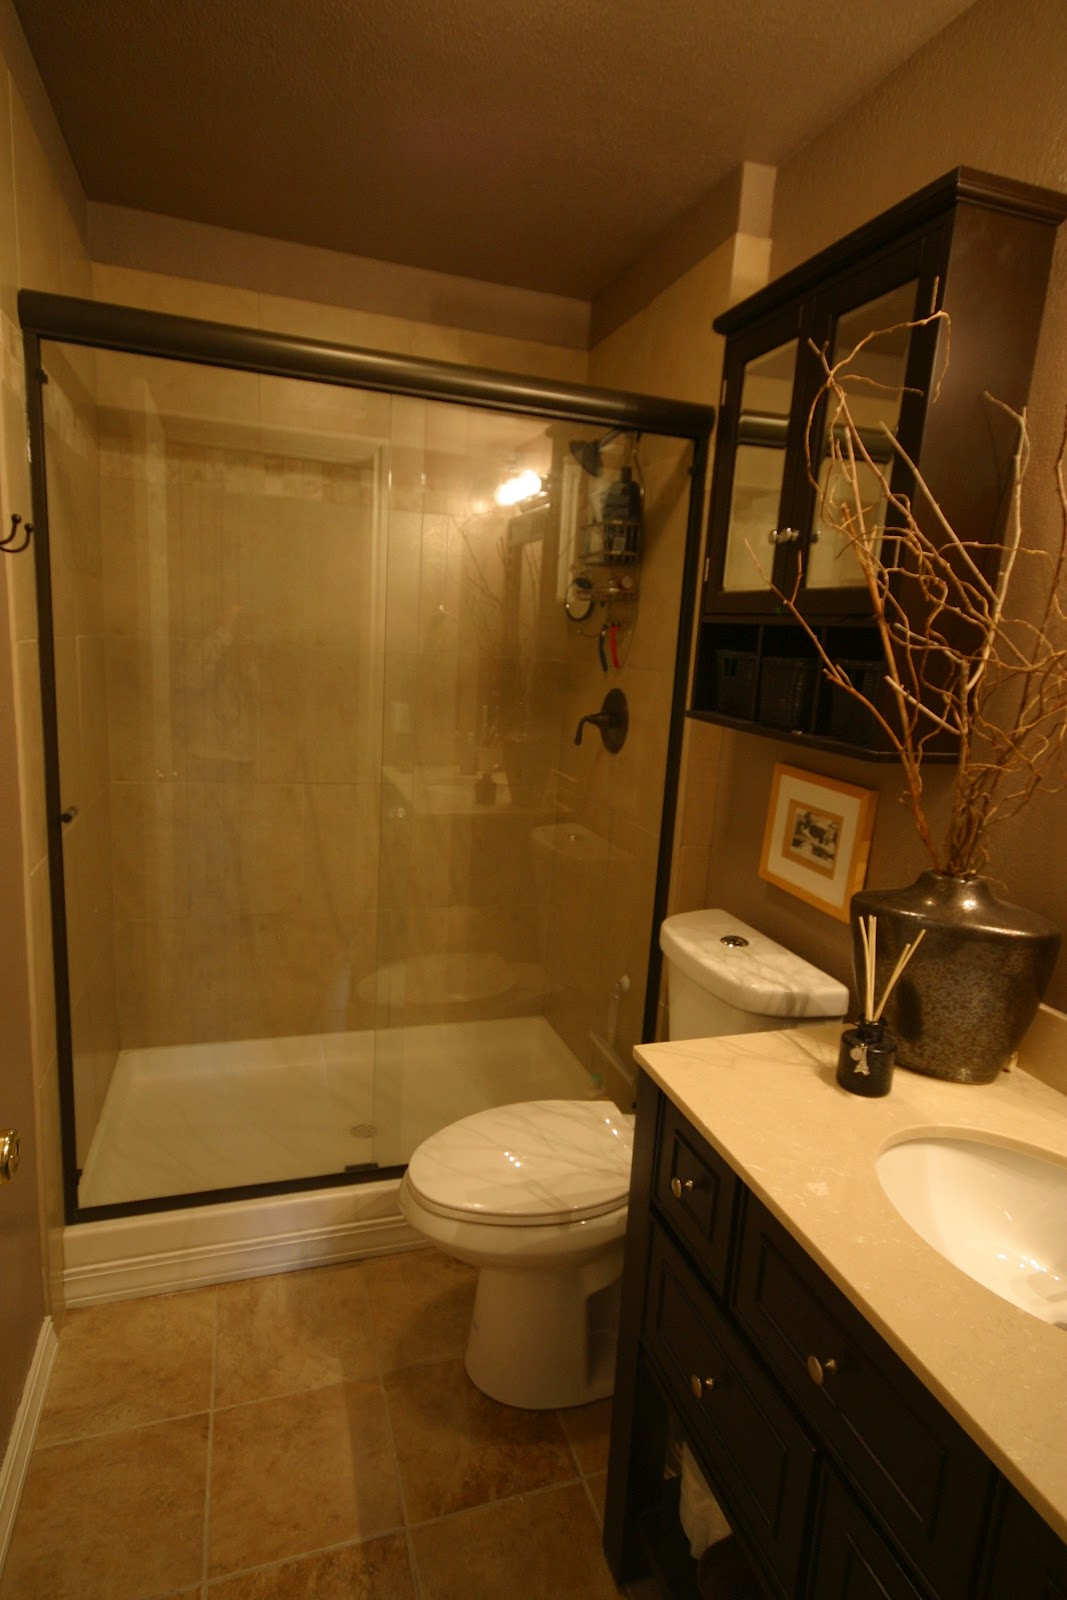 Small bathroom remodels maximal outlook in minimal space - Pictures of remodeled small bathrooms ...